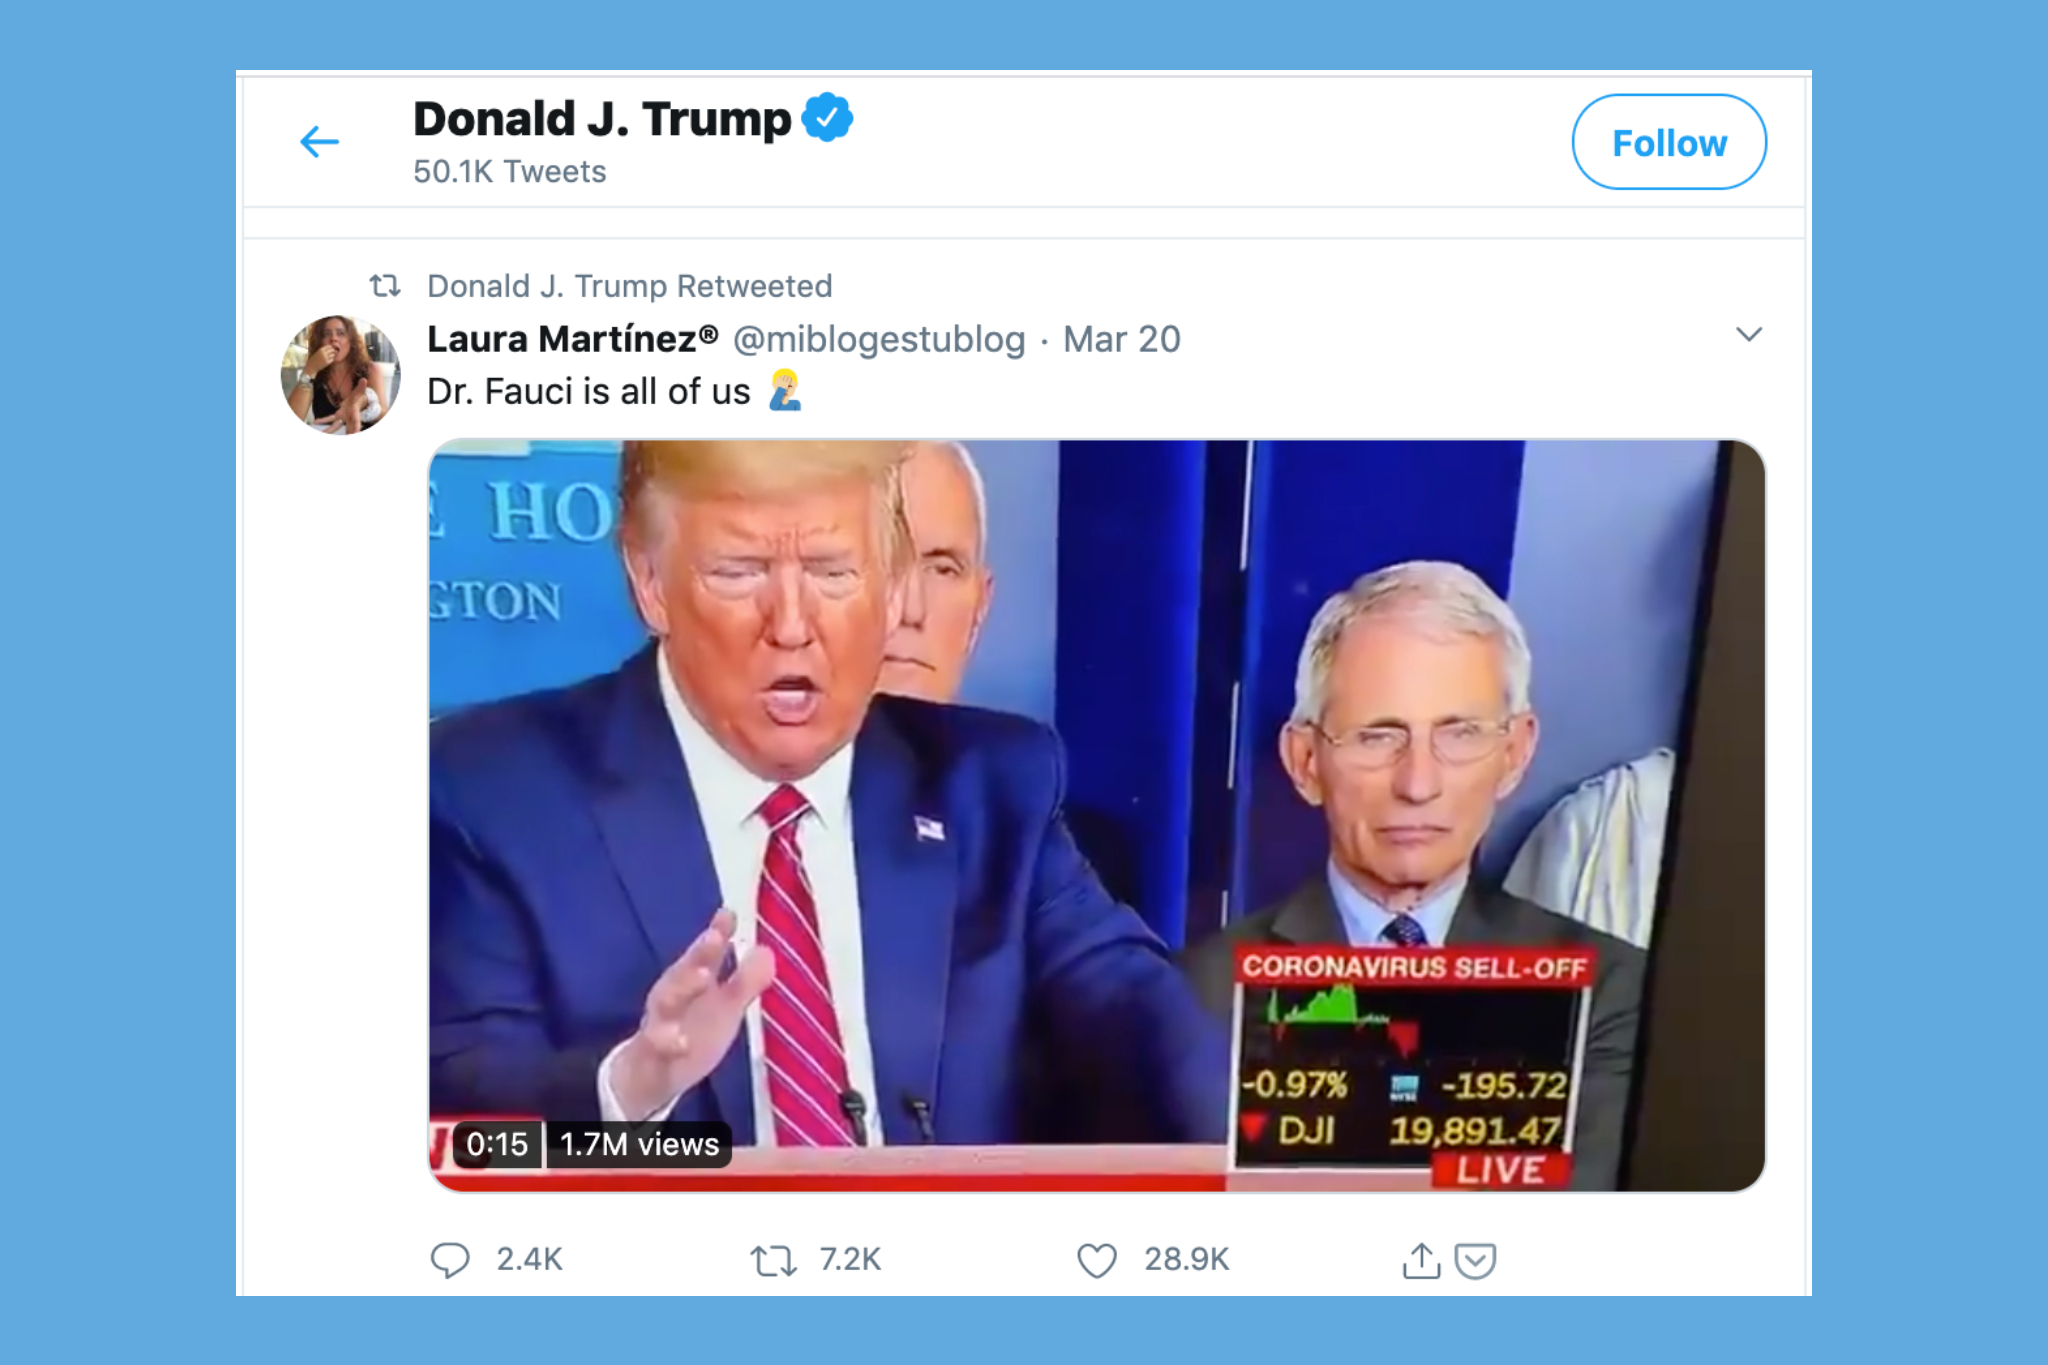 Trump Retweets Fauci Meme That Appears To Be Making Fun Of Him